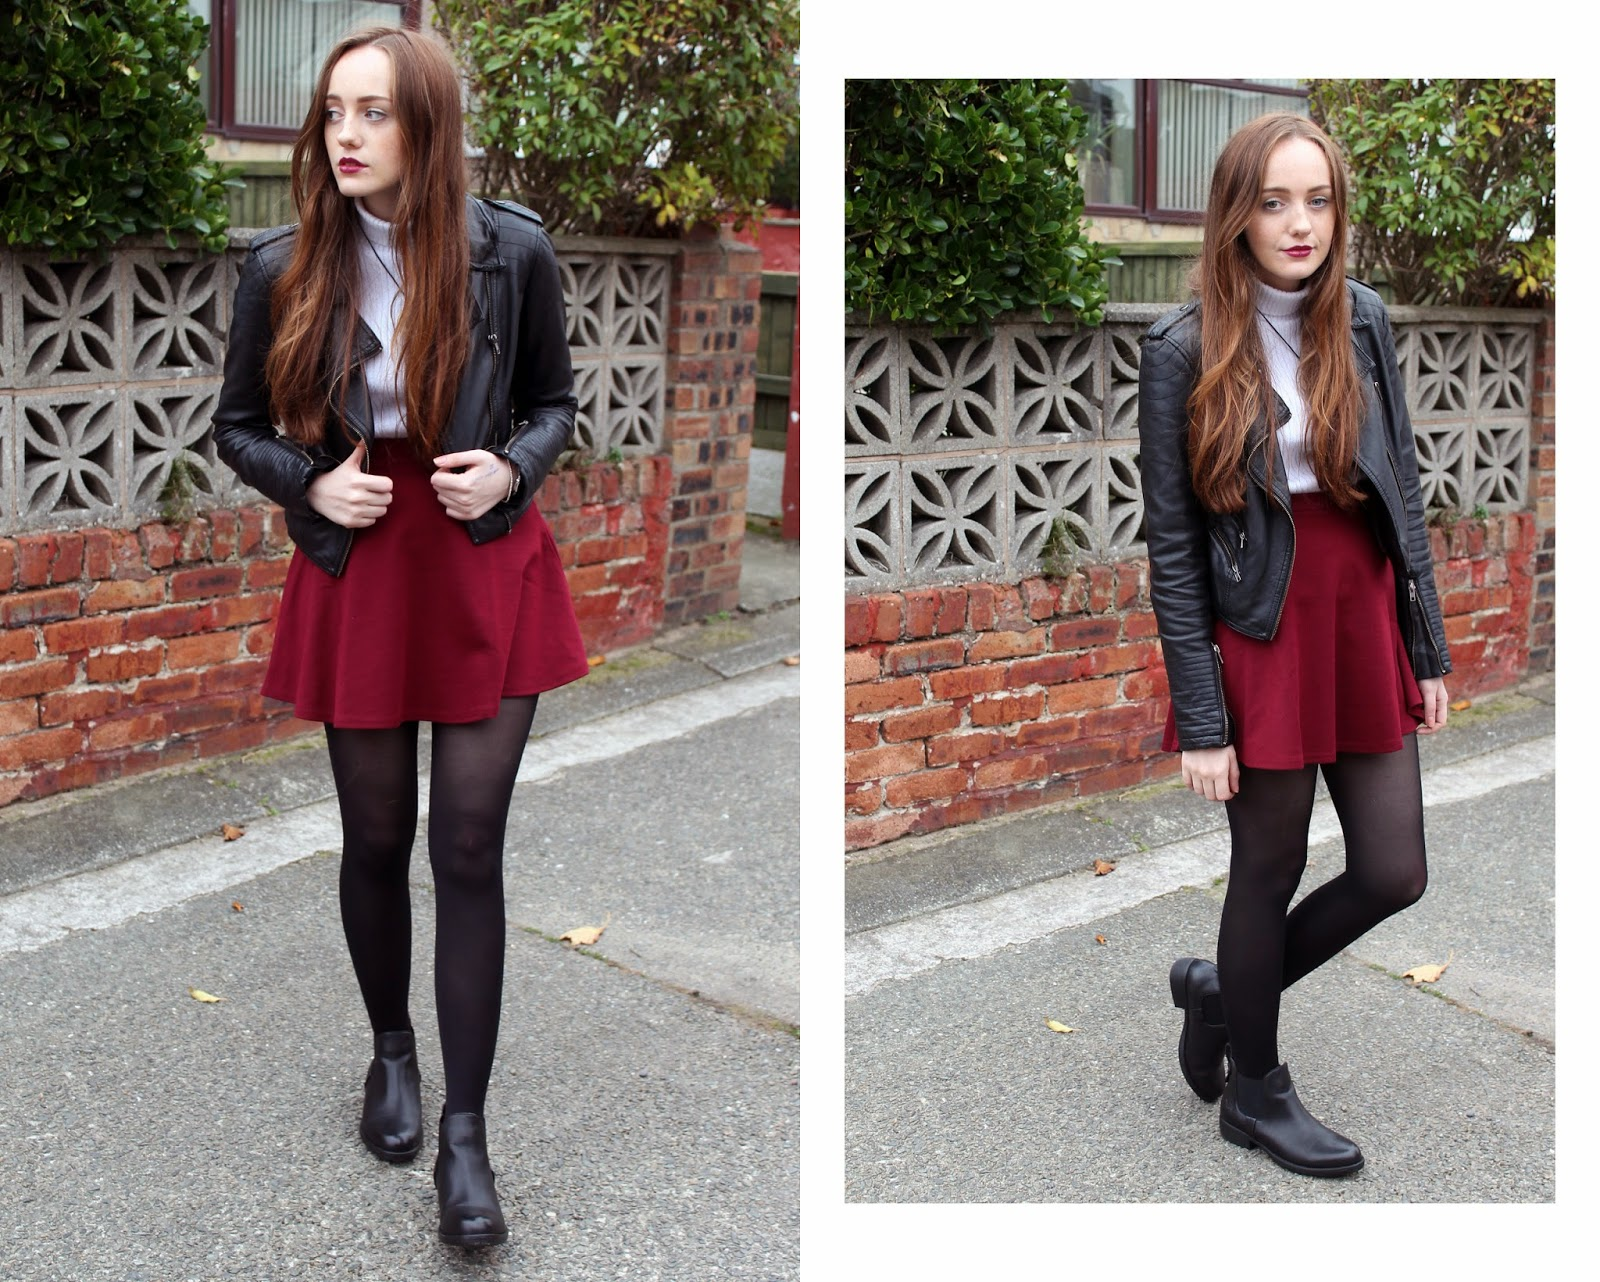 OOTD featuring black faux leather warehouse jacket, white rib knit poloneck from ASOS, yin yang necklace, burgundy skater skirt and black chelsea boots from get the label